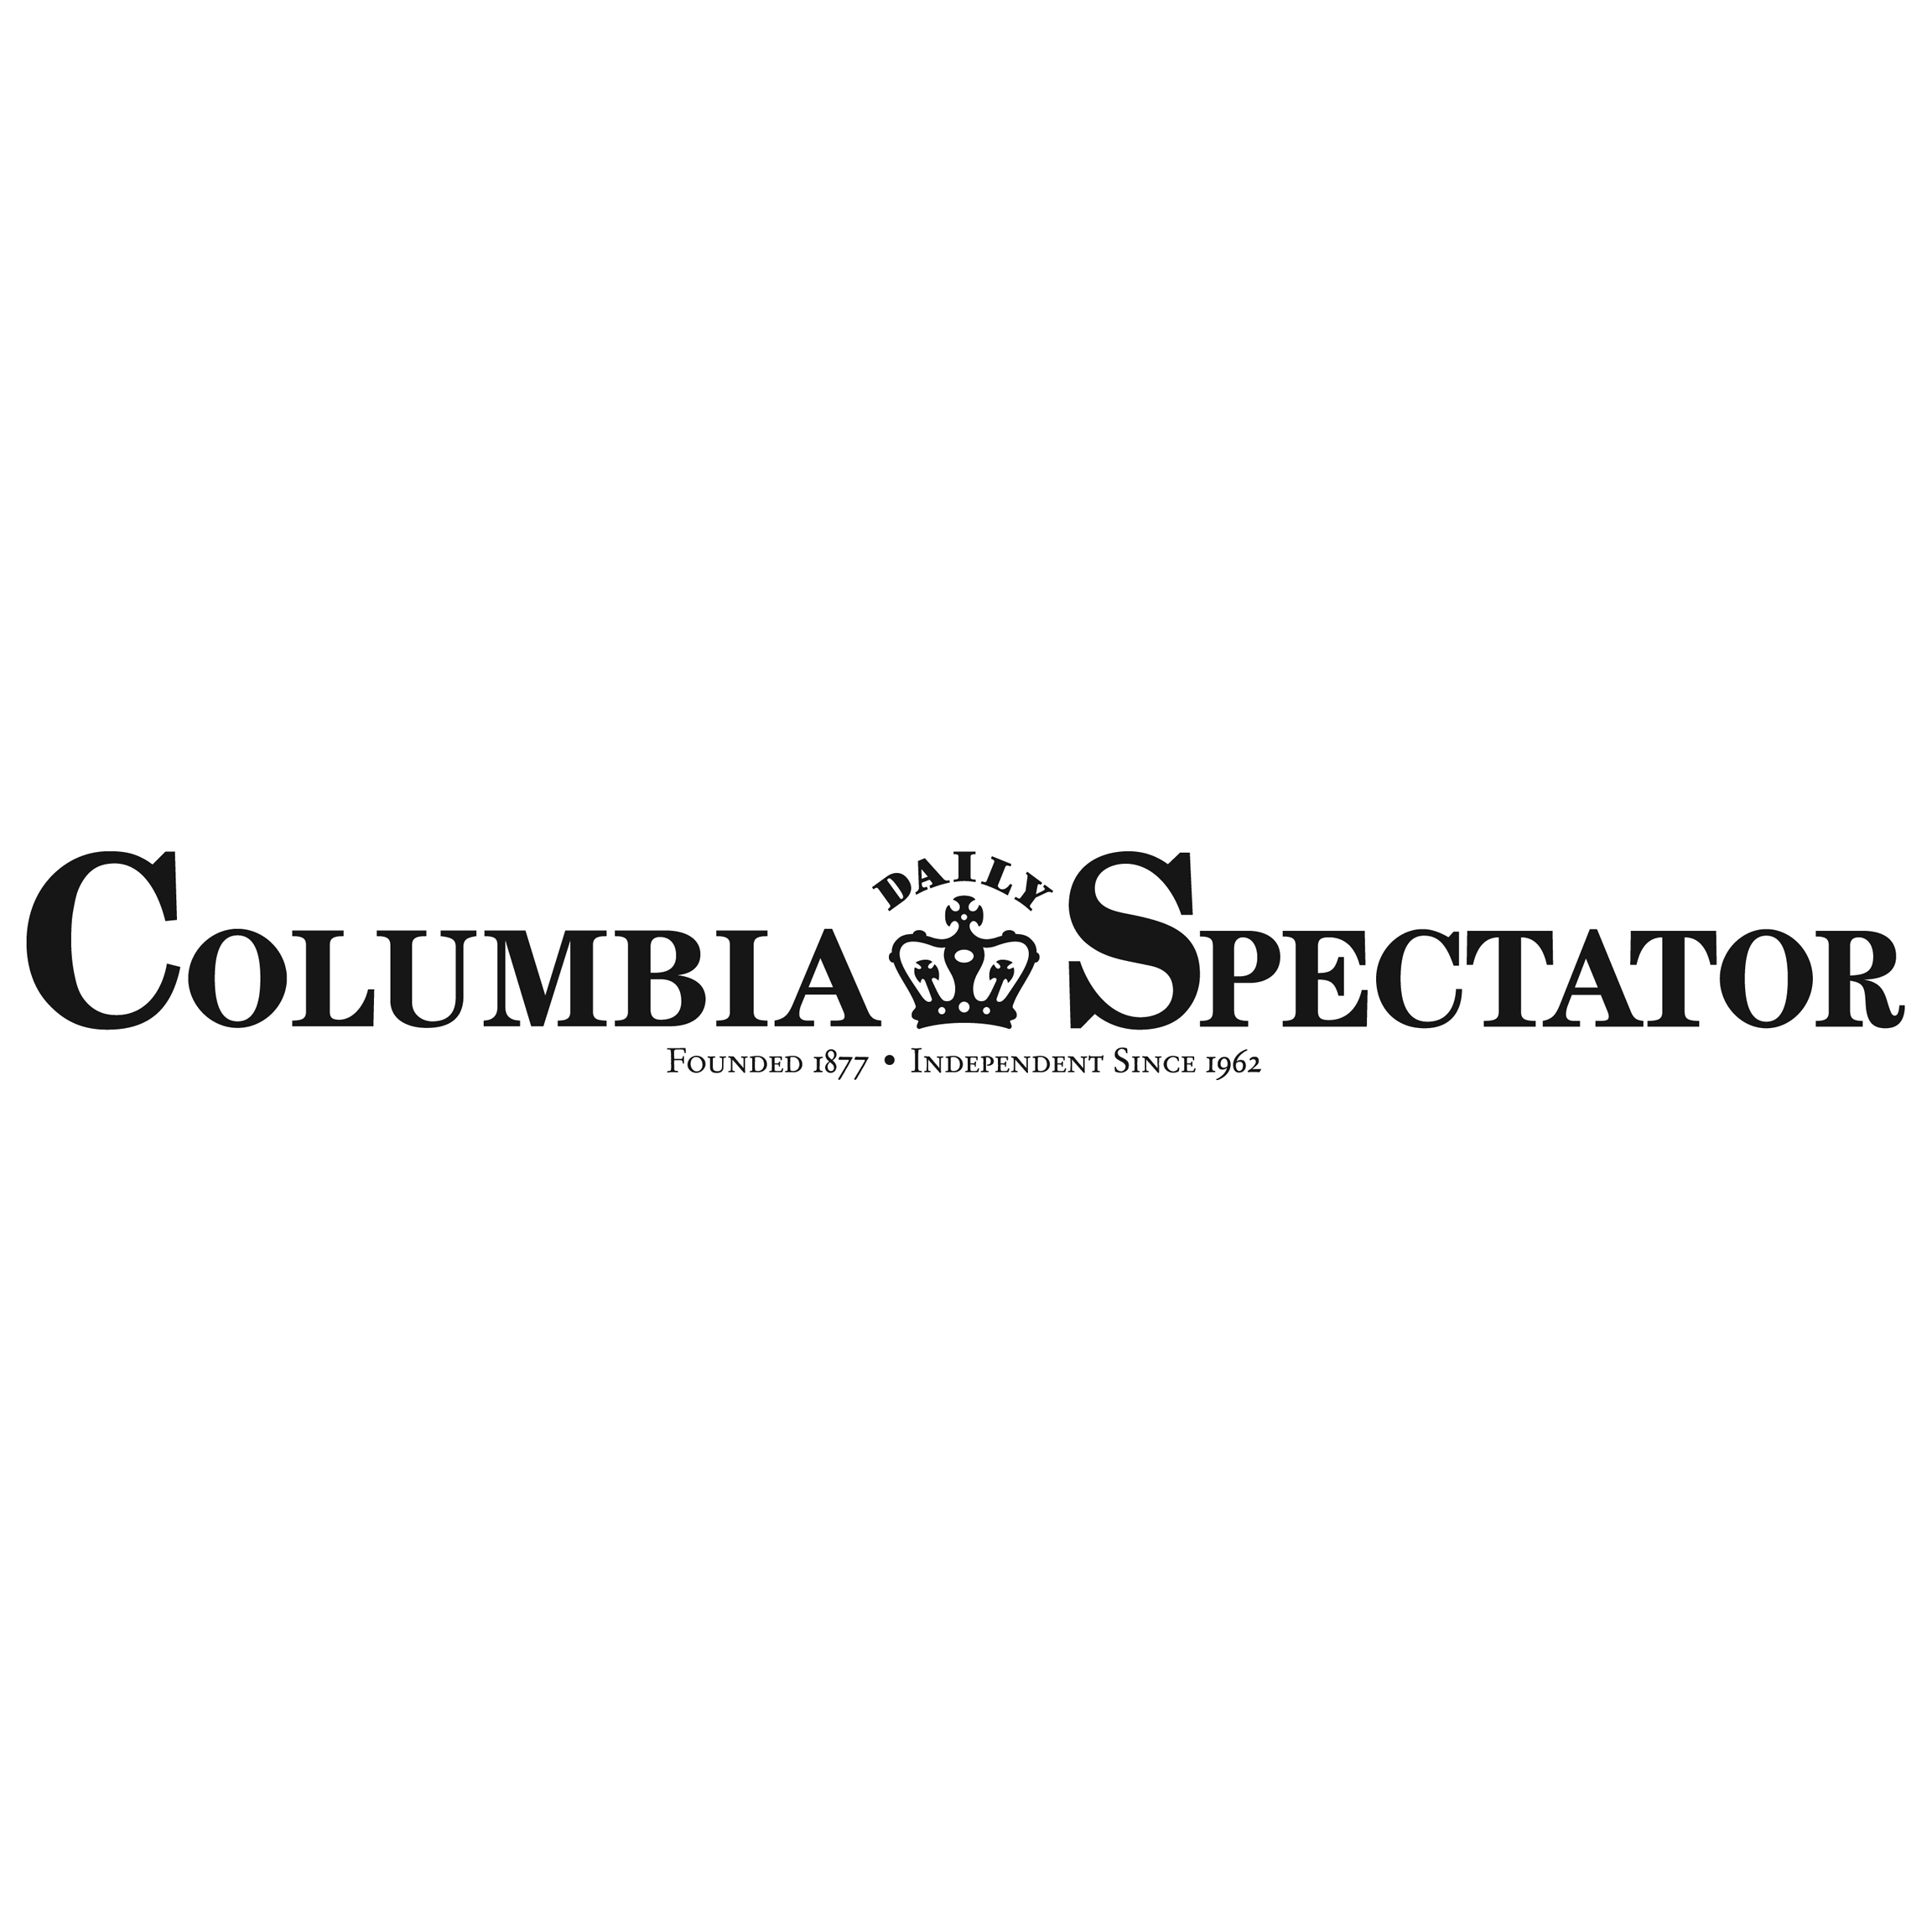 """Columbia Spectator   PussyWeed: Crafting A Feminist Aesthetic  """"PussyWeed's vision of feminism intersects with the issue of marijuana legalization in a creative manner"""""""